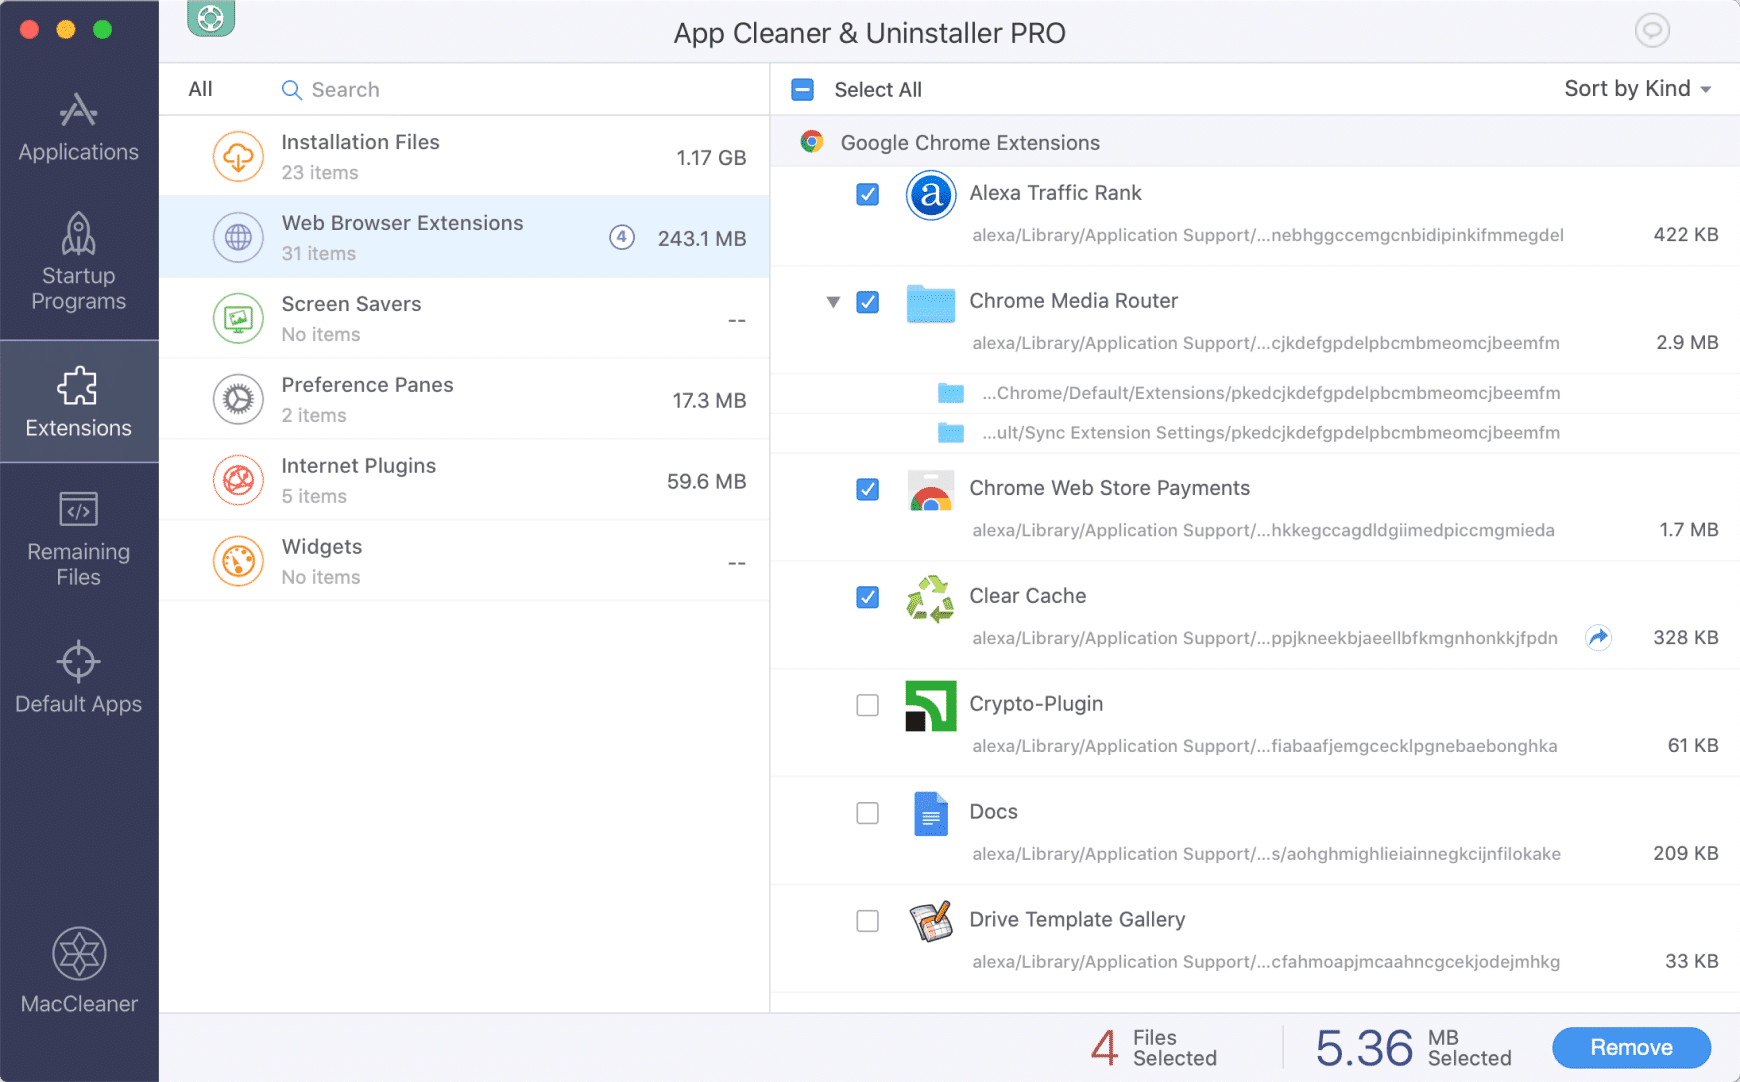 App Cleaner & Uninstaller window with ticked extensions